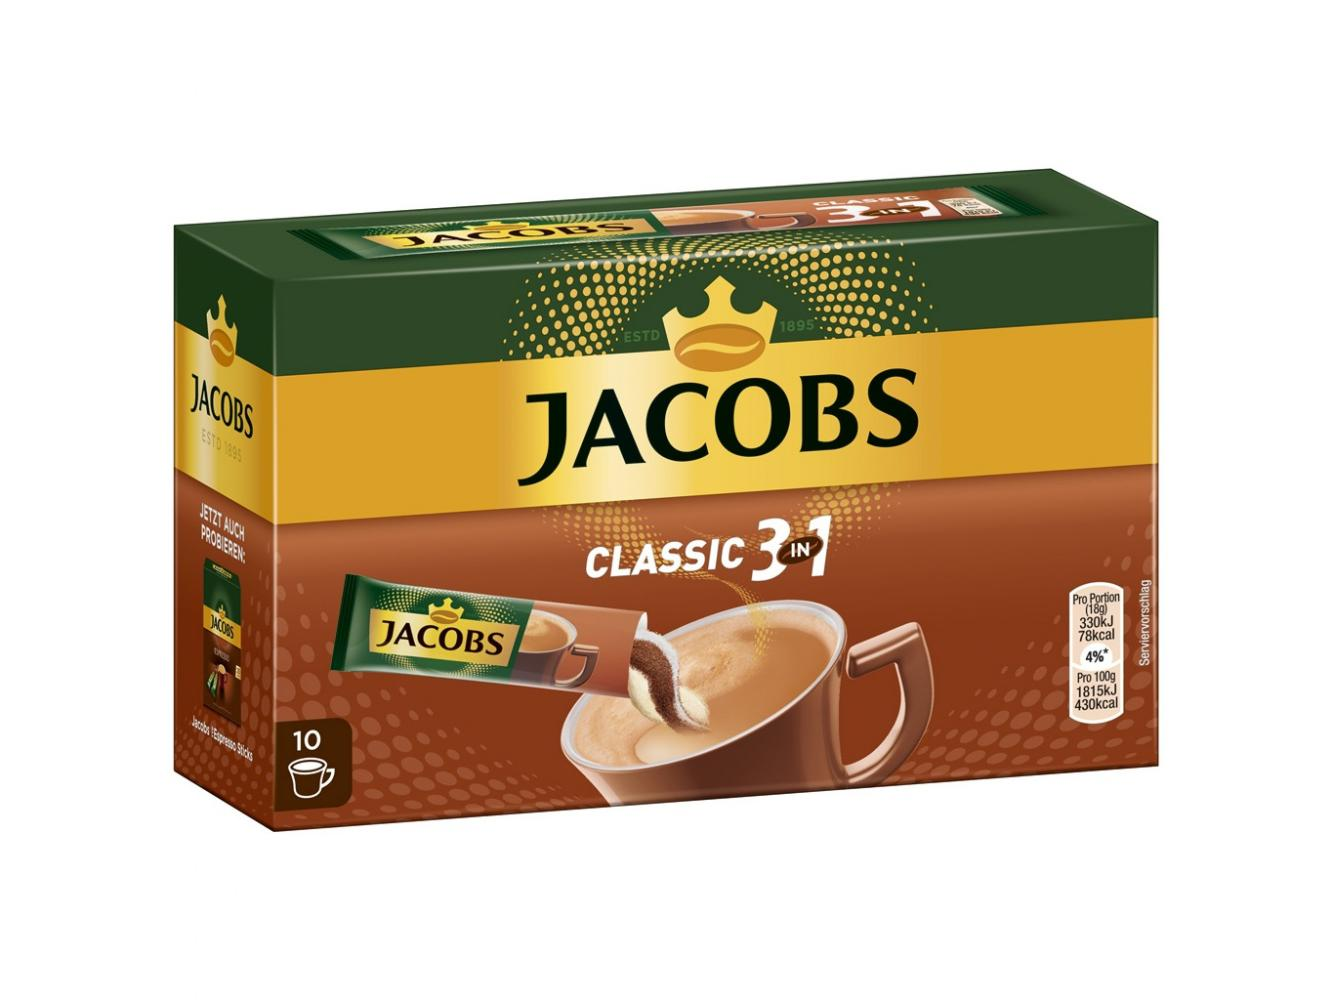 Jacobs 3 in 1 Classic